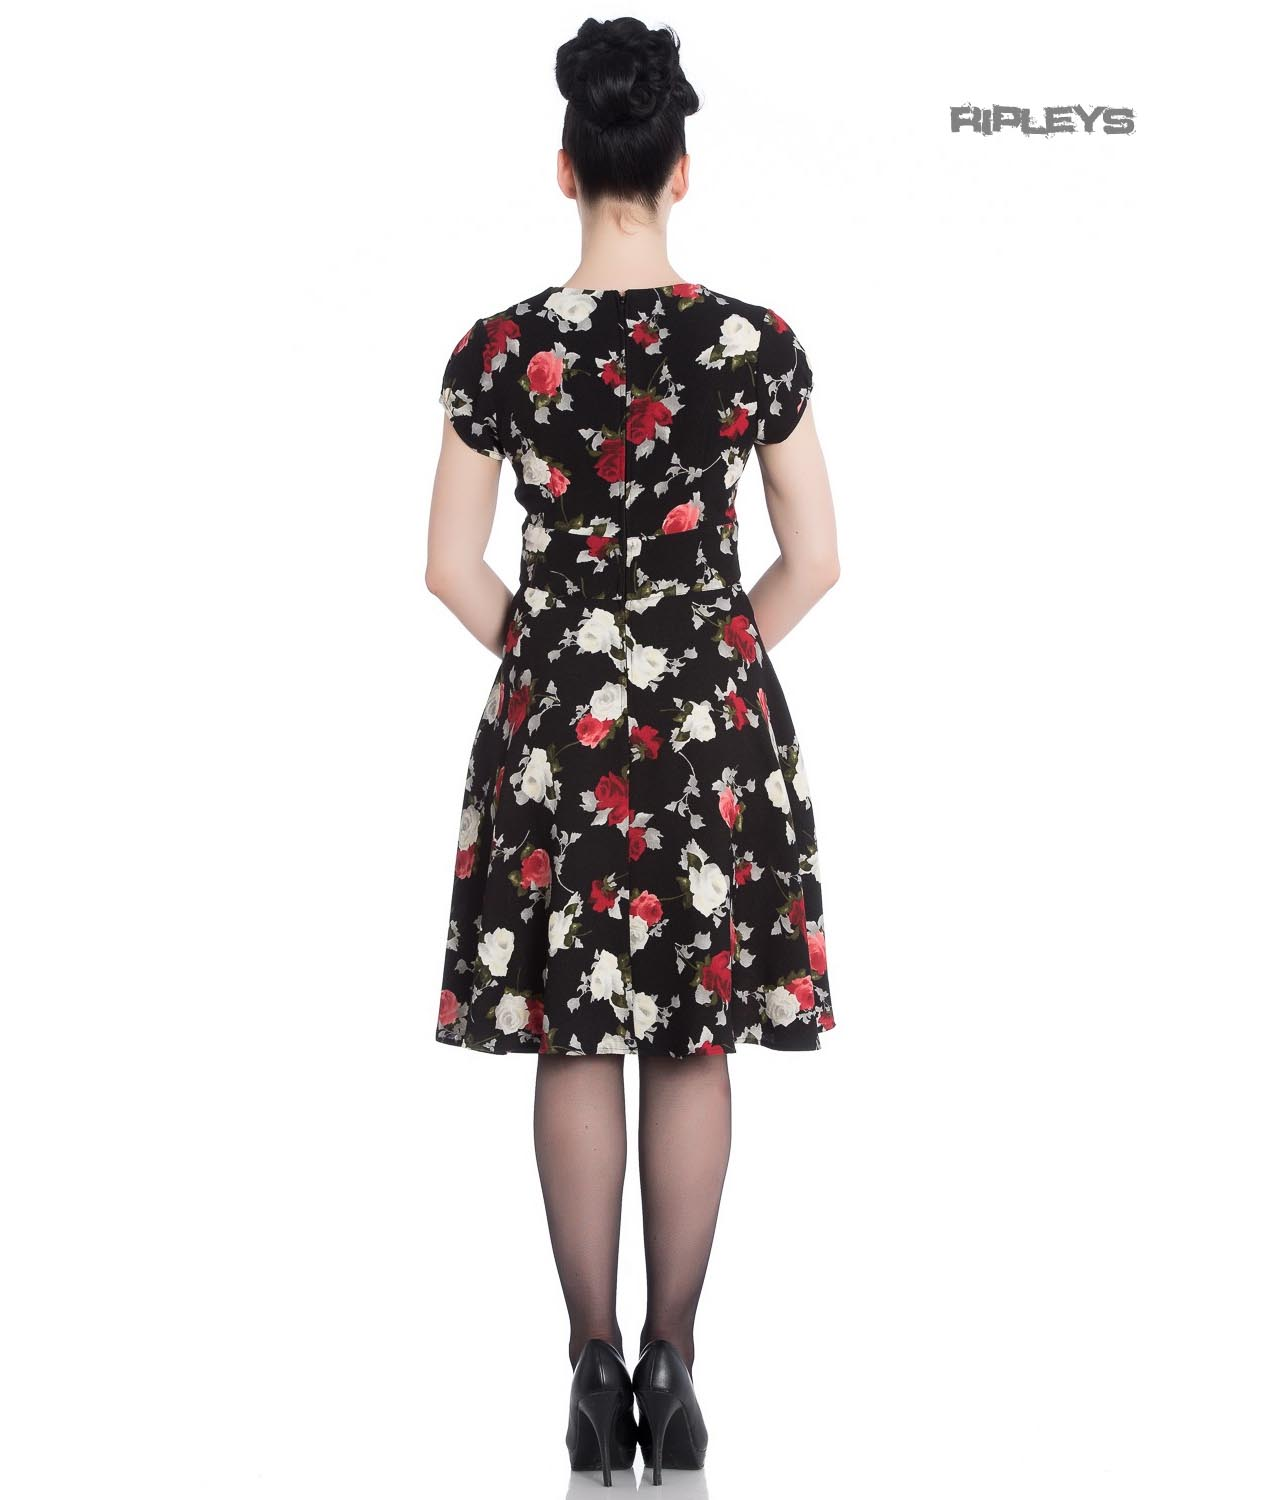 Hell-Bunny-40s-50s-Elegant-Pin-Up-Dress-VALENTINA-Black-Roses thumbnail 12